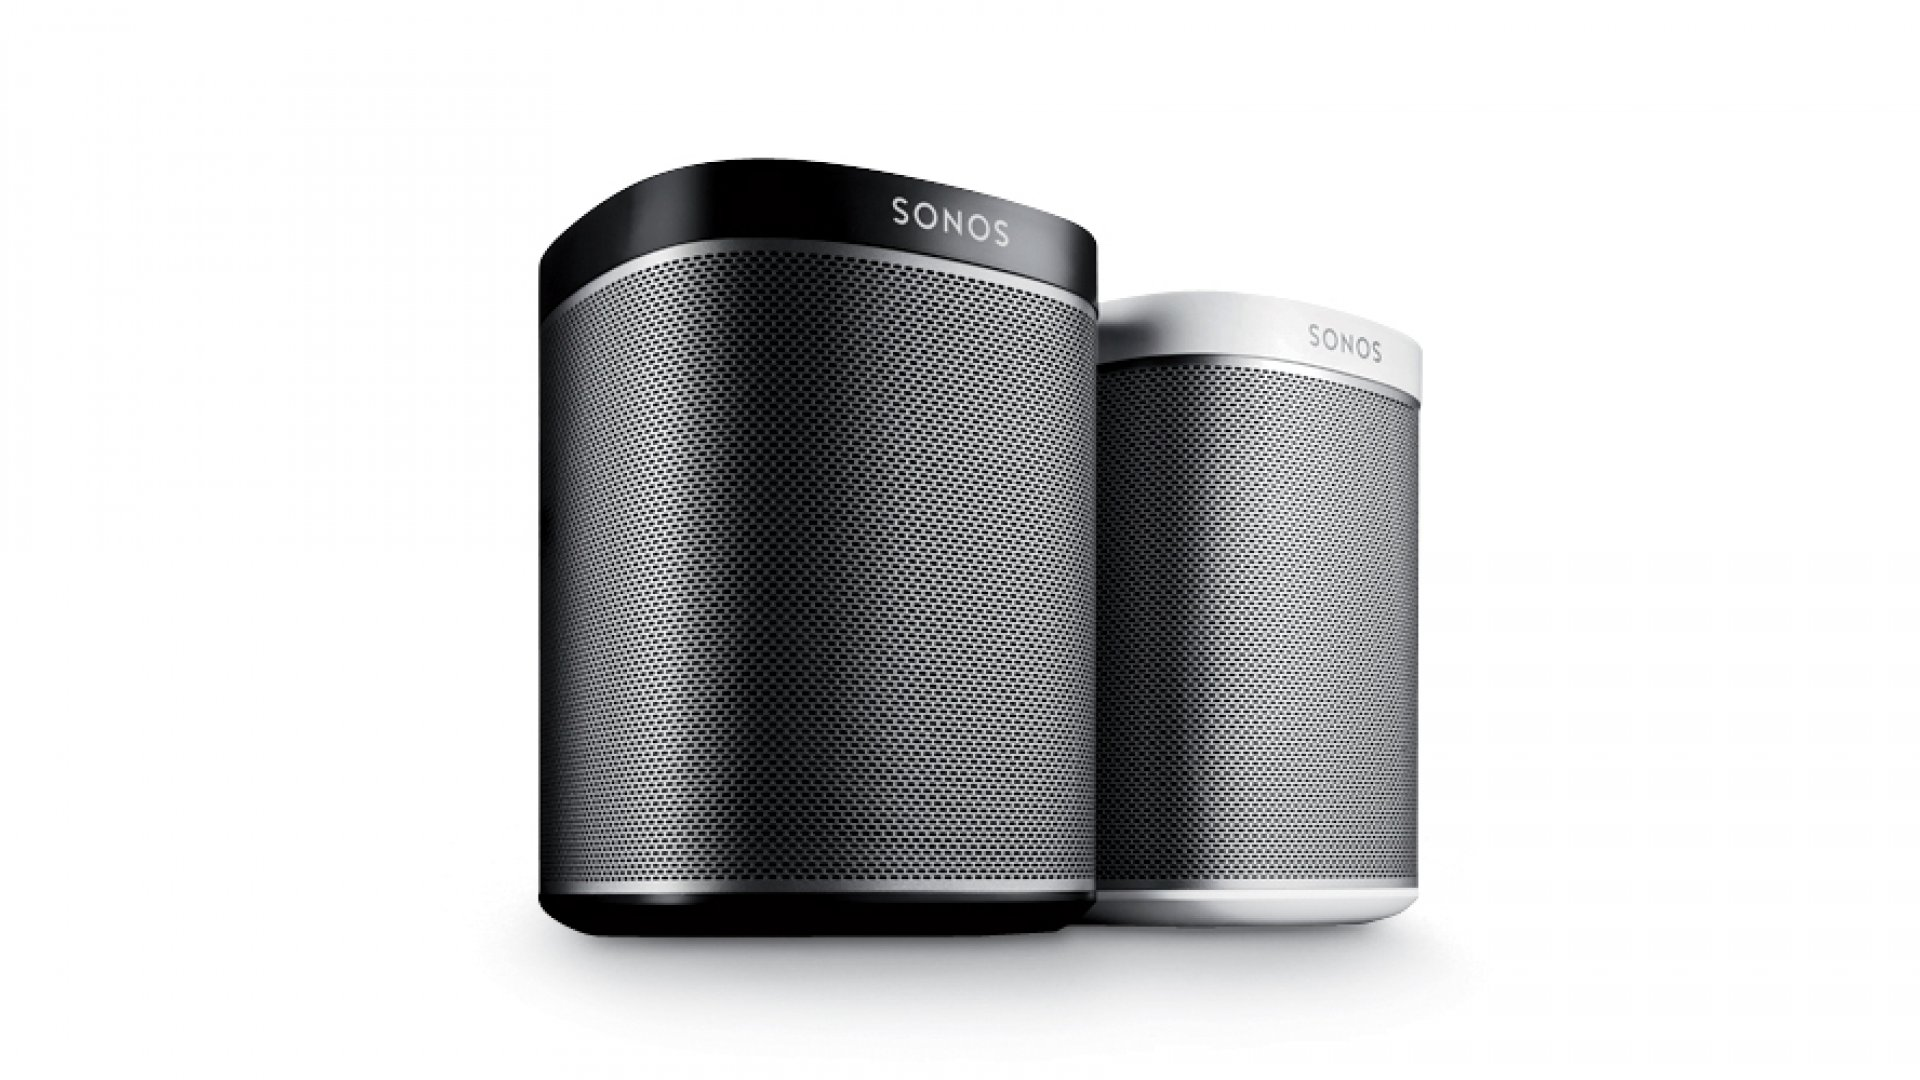 The Sonos Play:1, released in 2013, is a compact, wireless speaker that streams tunes from any device.